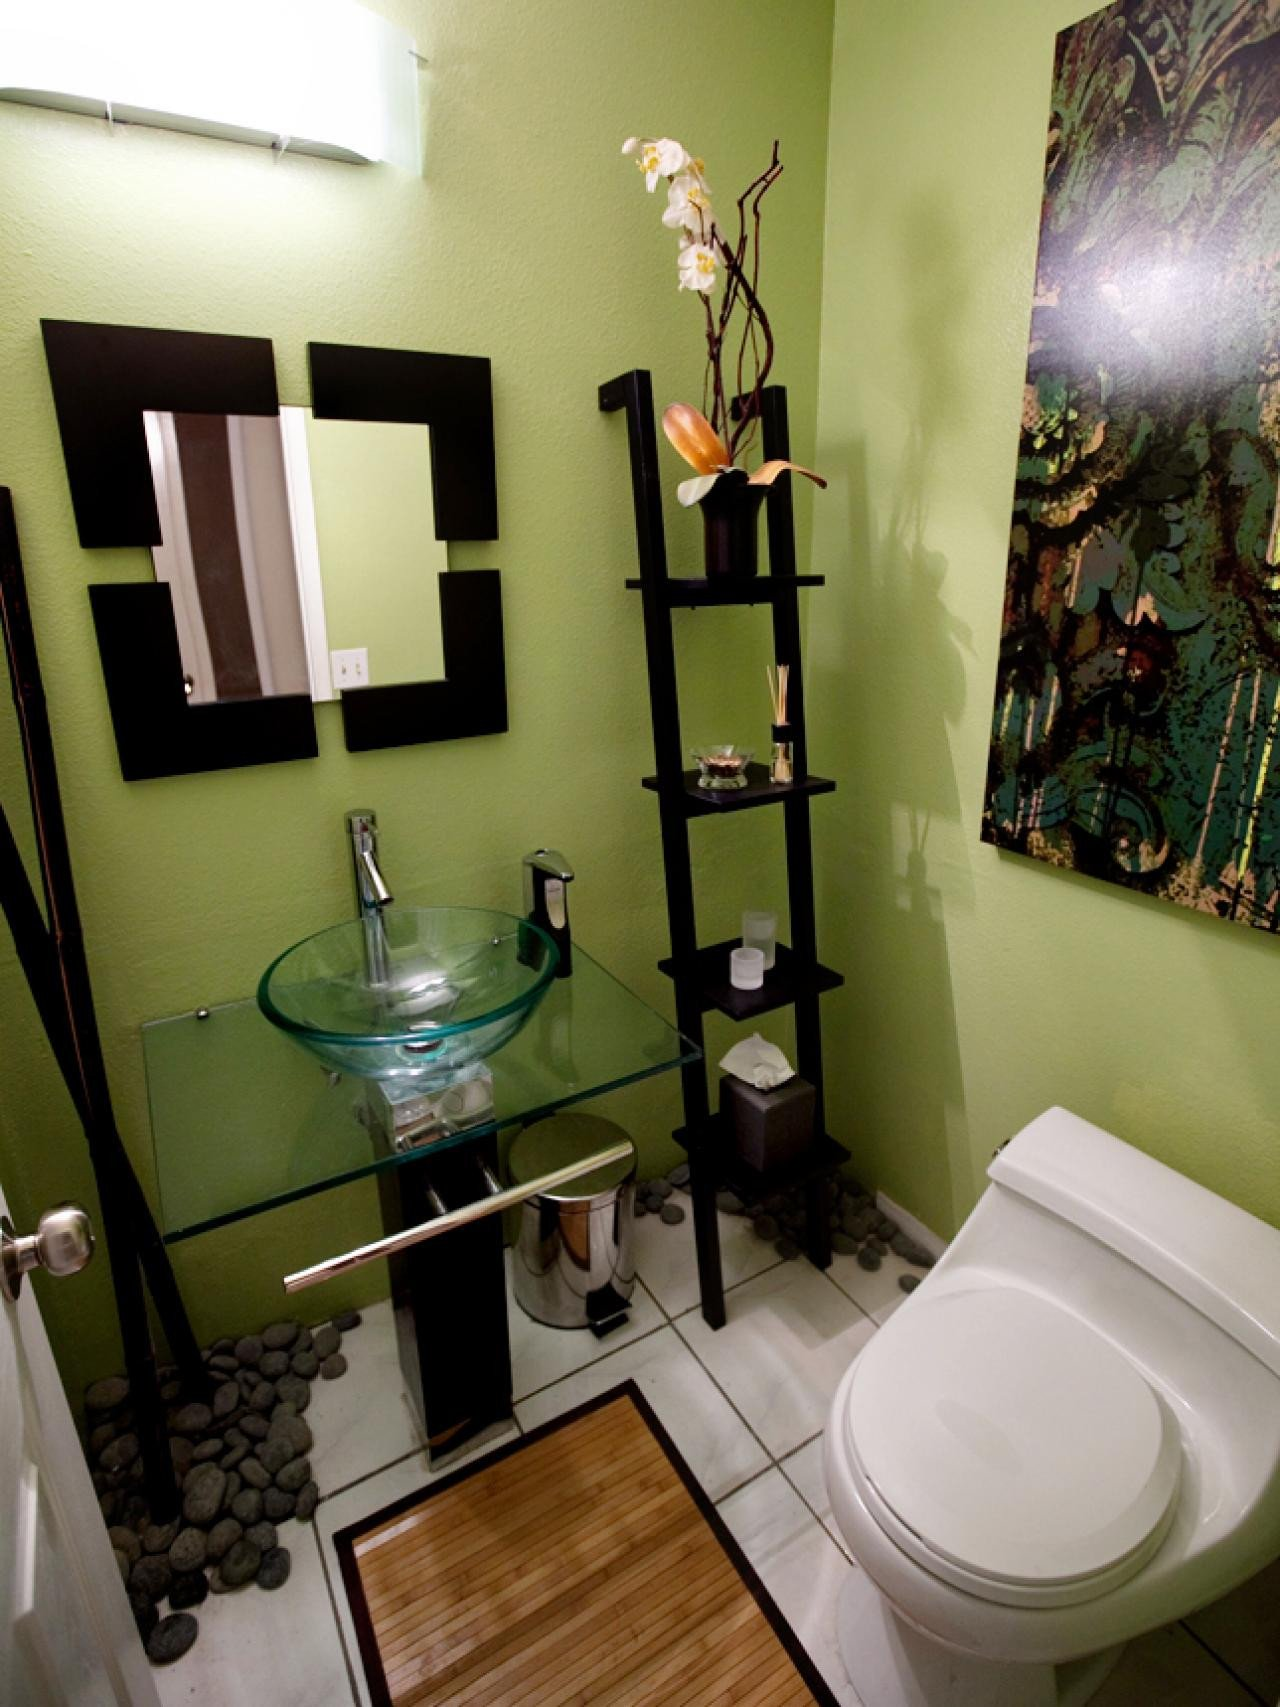 Bathroom Decor On A Budget Awesome if You Think A Small Bathroom Limits Design Potential Take A Look at This Diy Space Created In